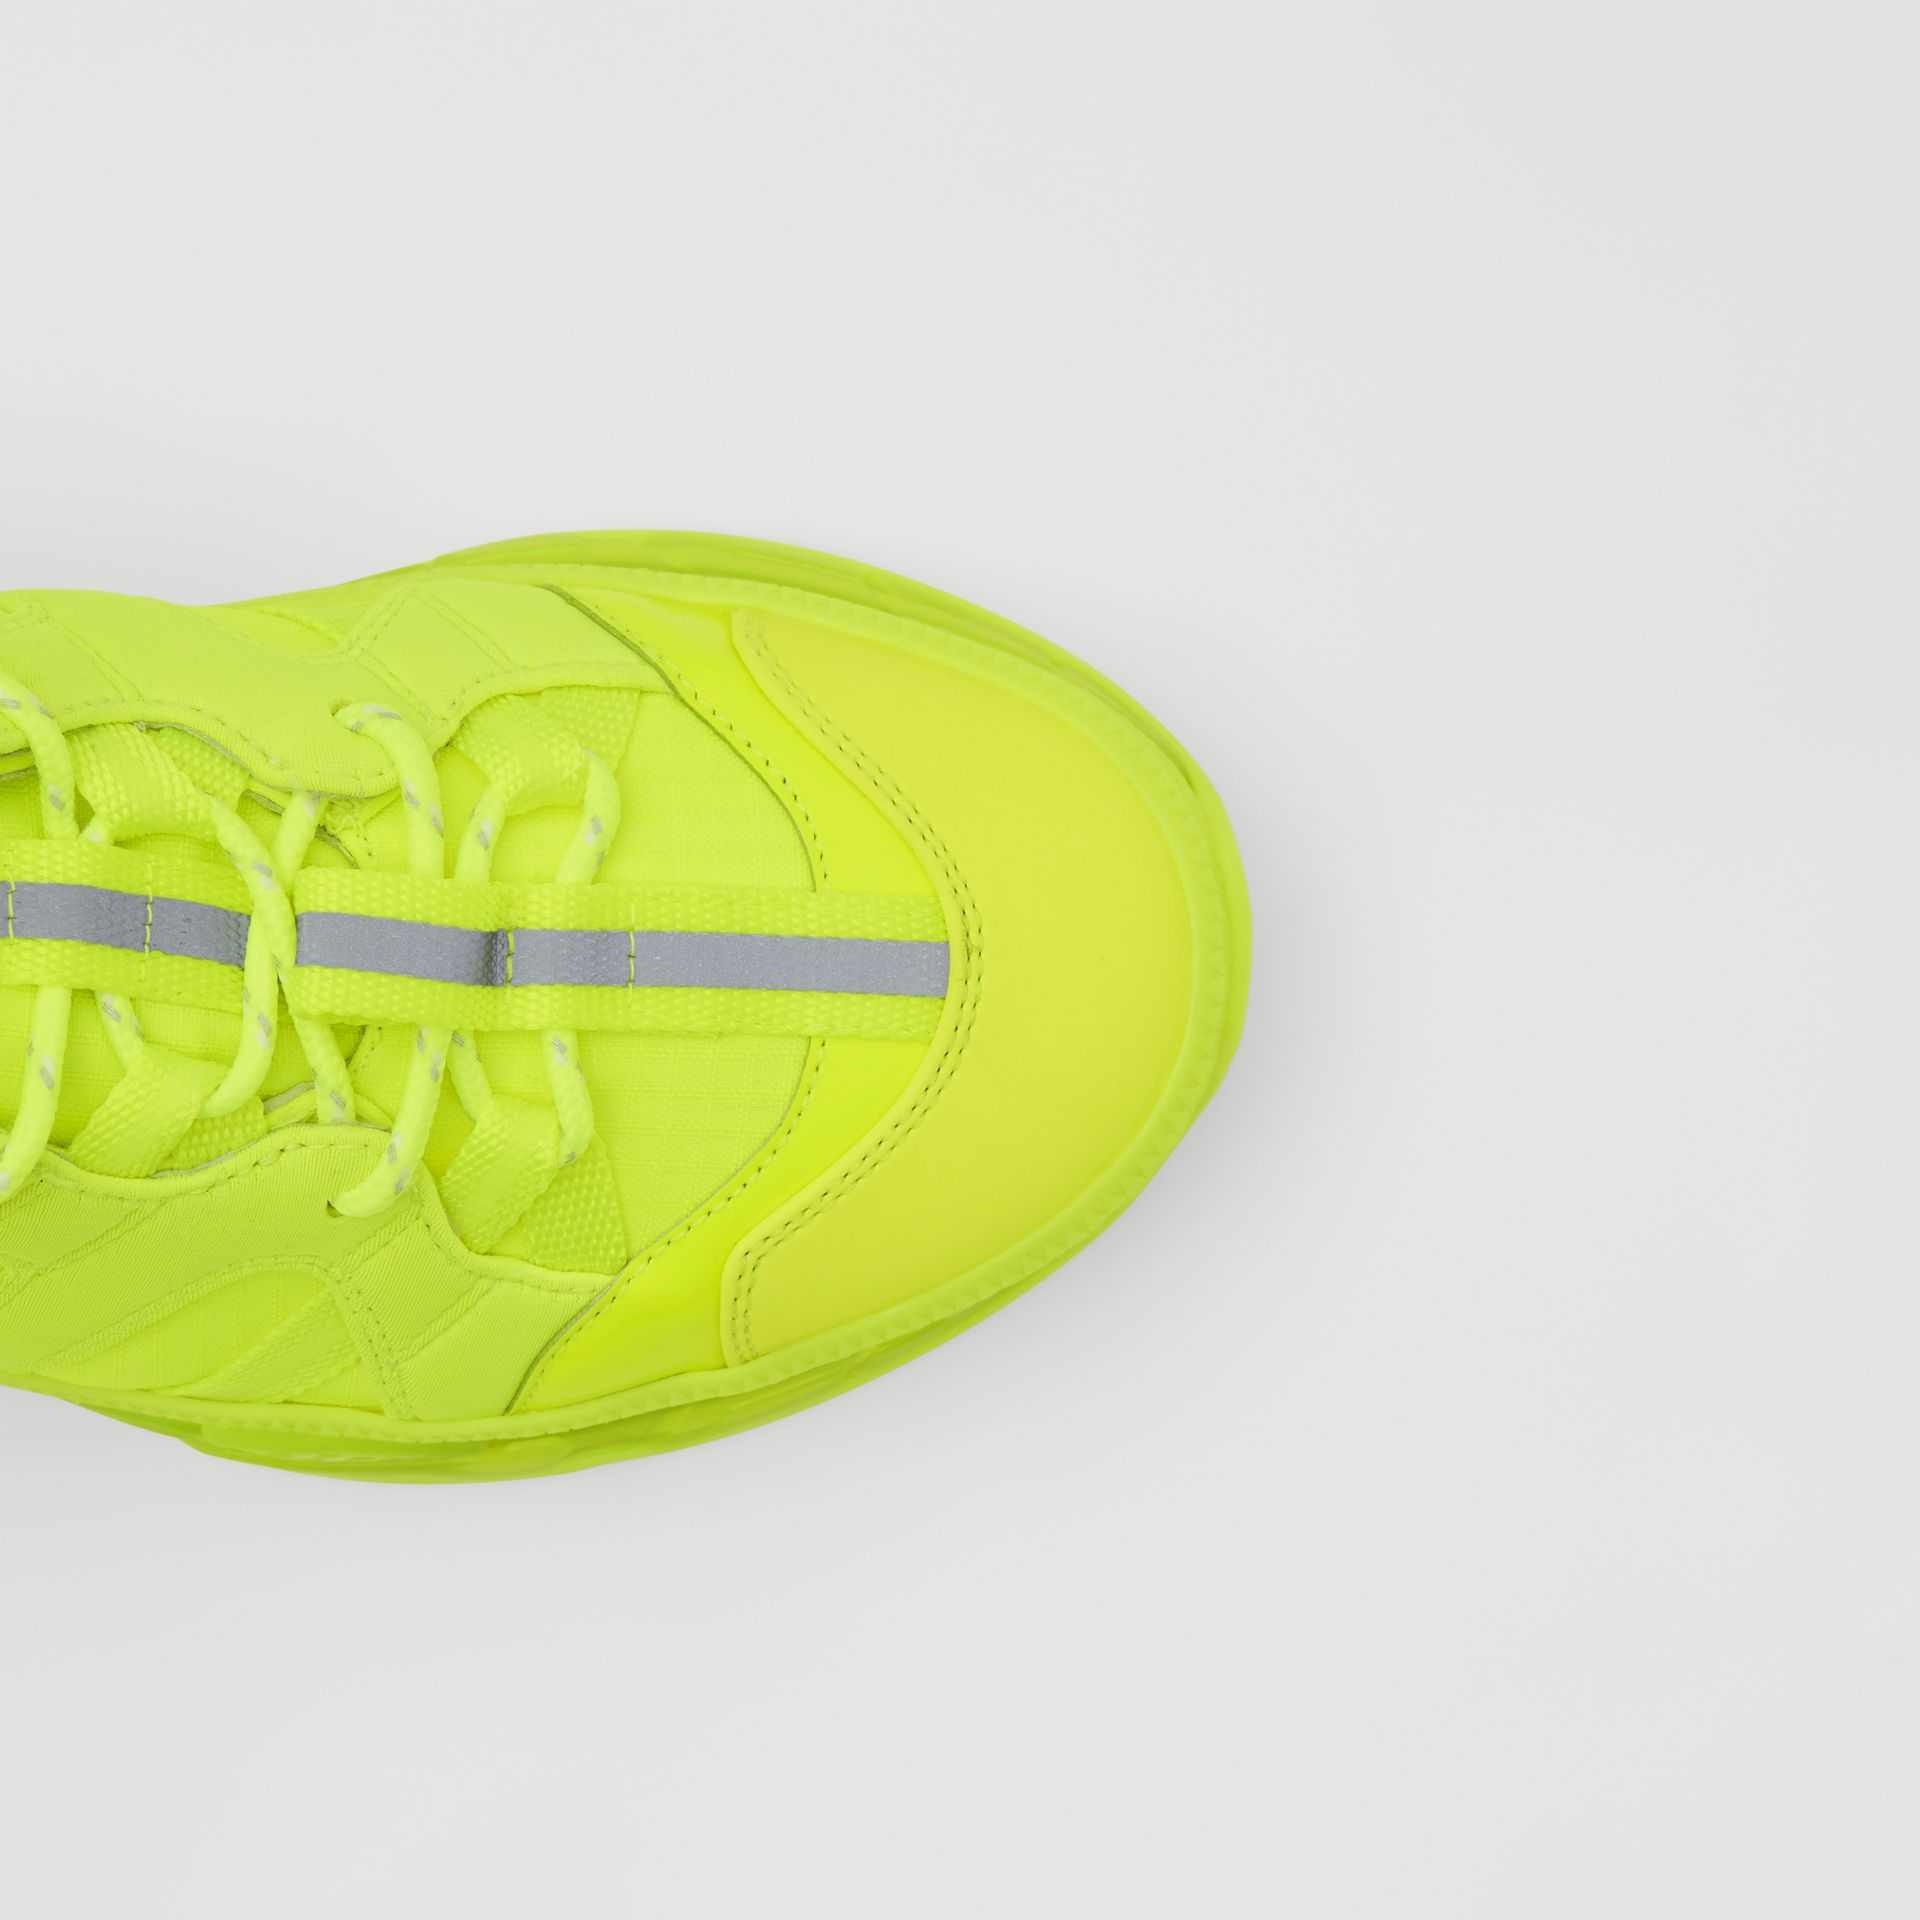 Nylon and Cotton Union Sneakers in Fluorescent Yellow - Women | Burberry - gallery image 1